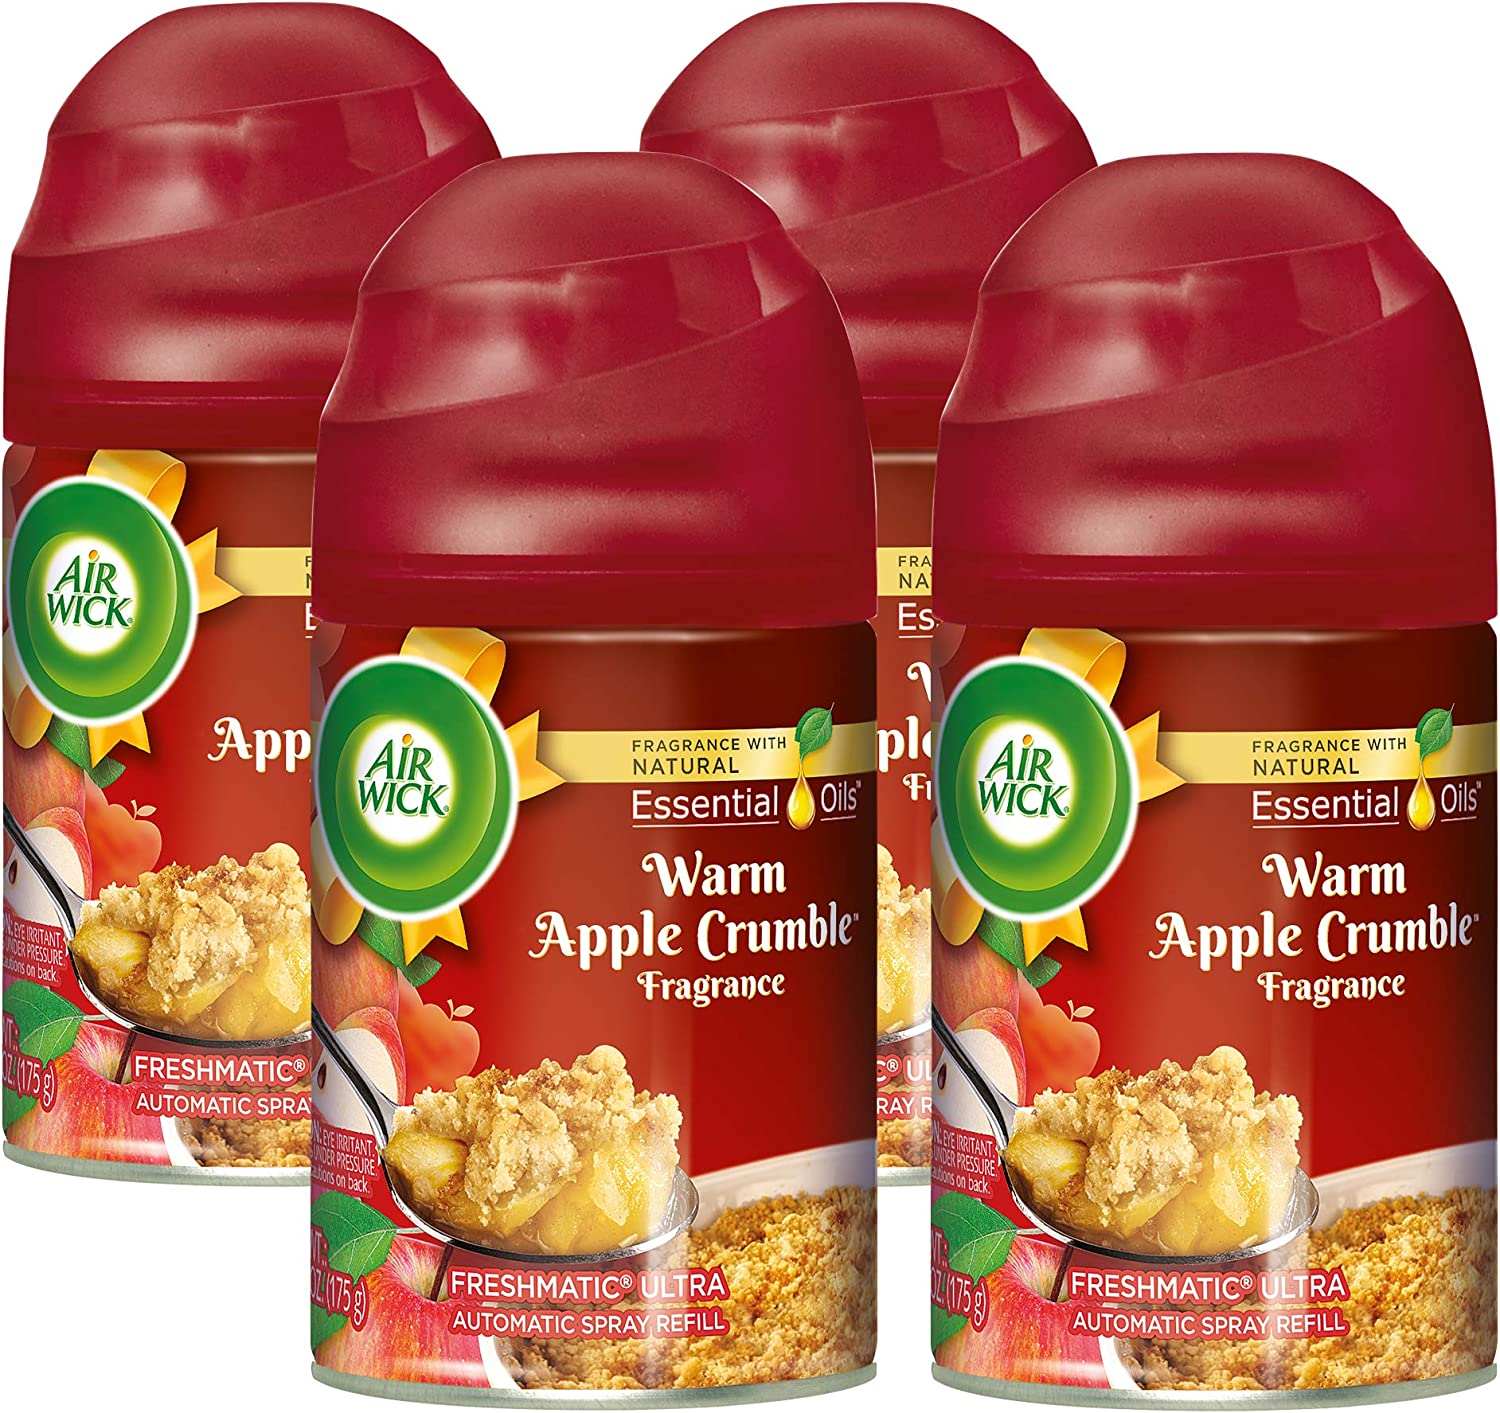 Air Wick Freshmatic Automatic Spray with Refill Air Freshener, Warm Apple Crumble, 4 Count